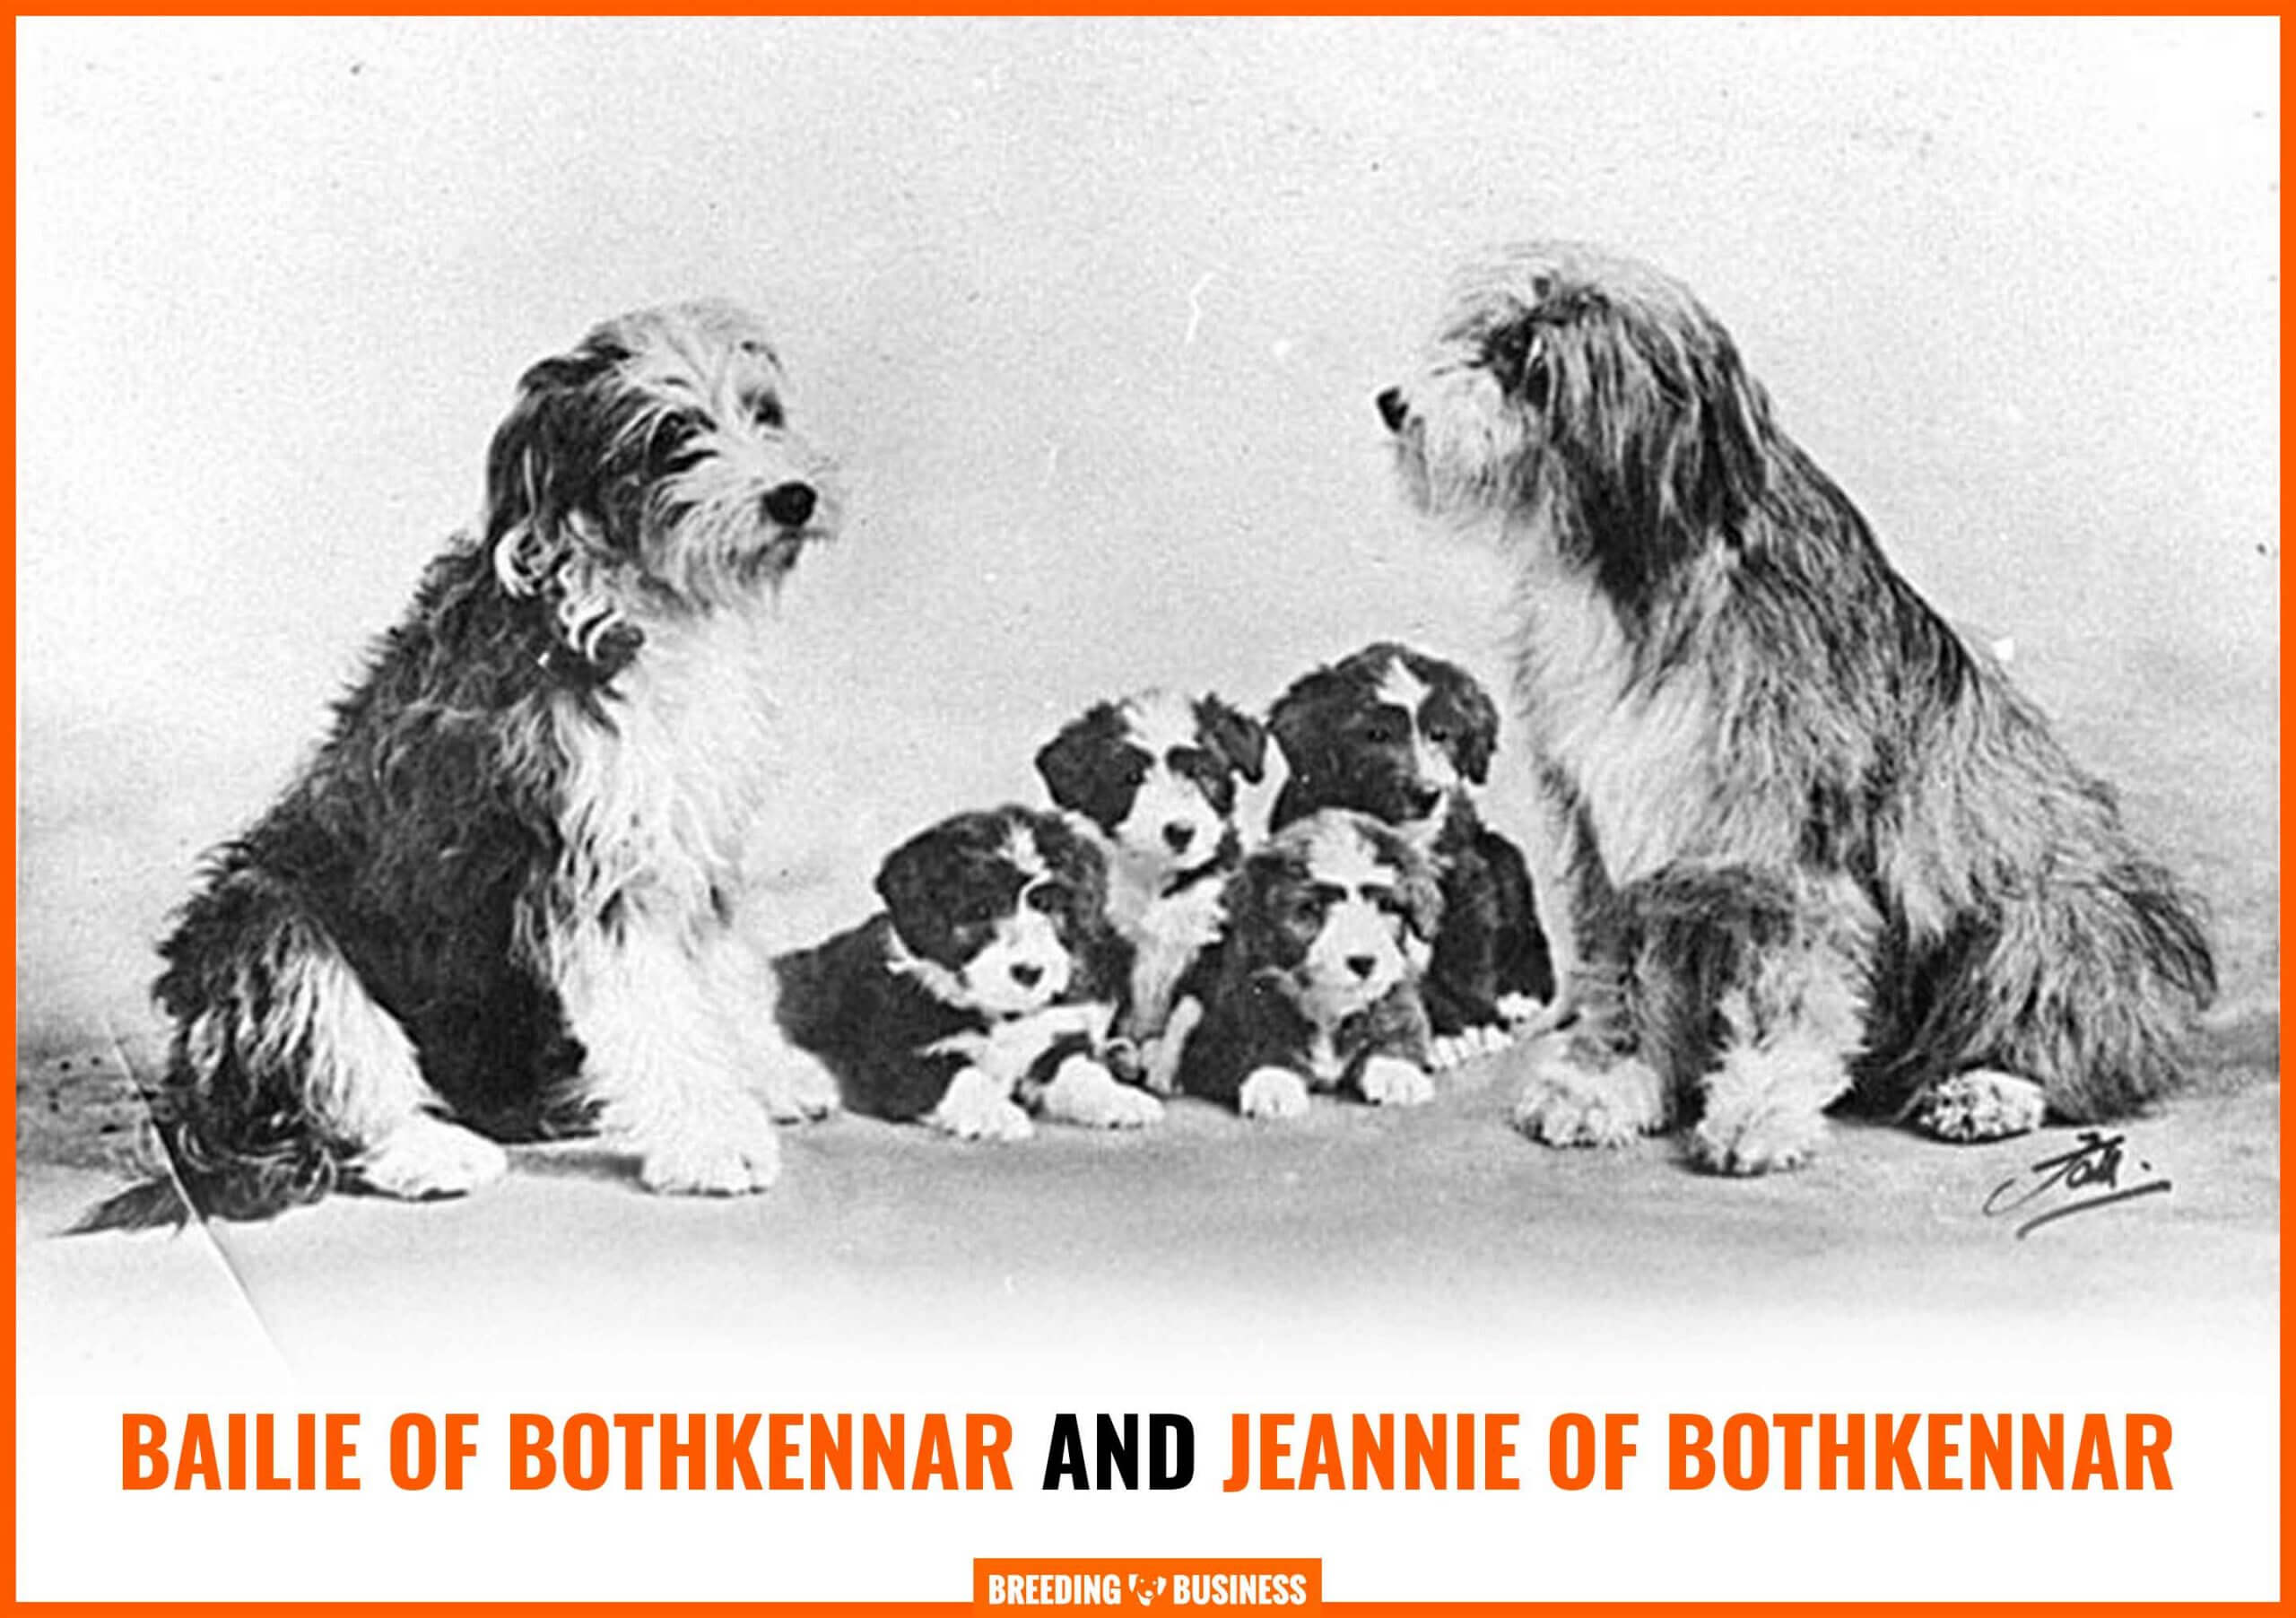 Bearded Collie History – Bailie of Bothkennar and Jeannie of Bothkennar